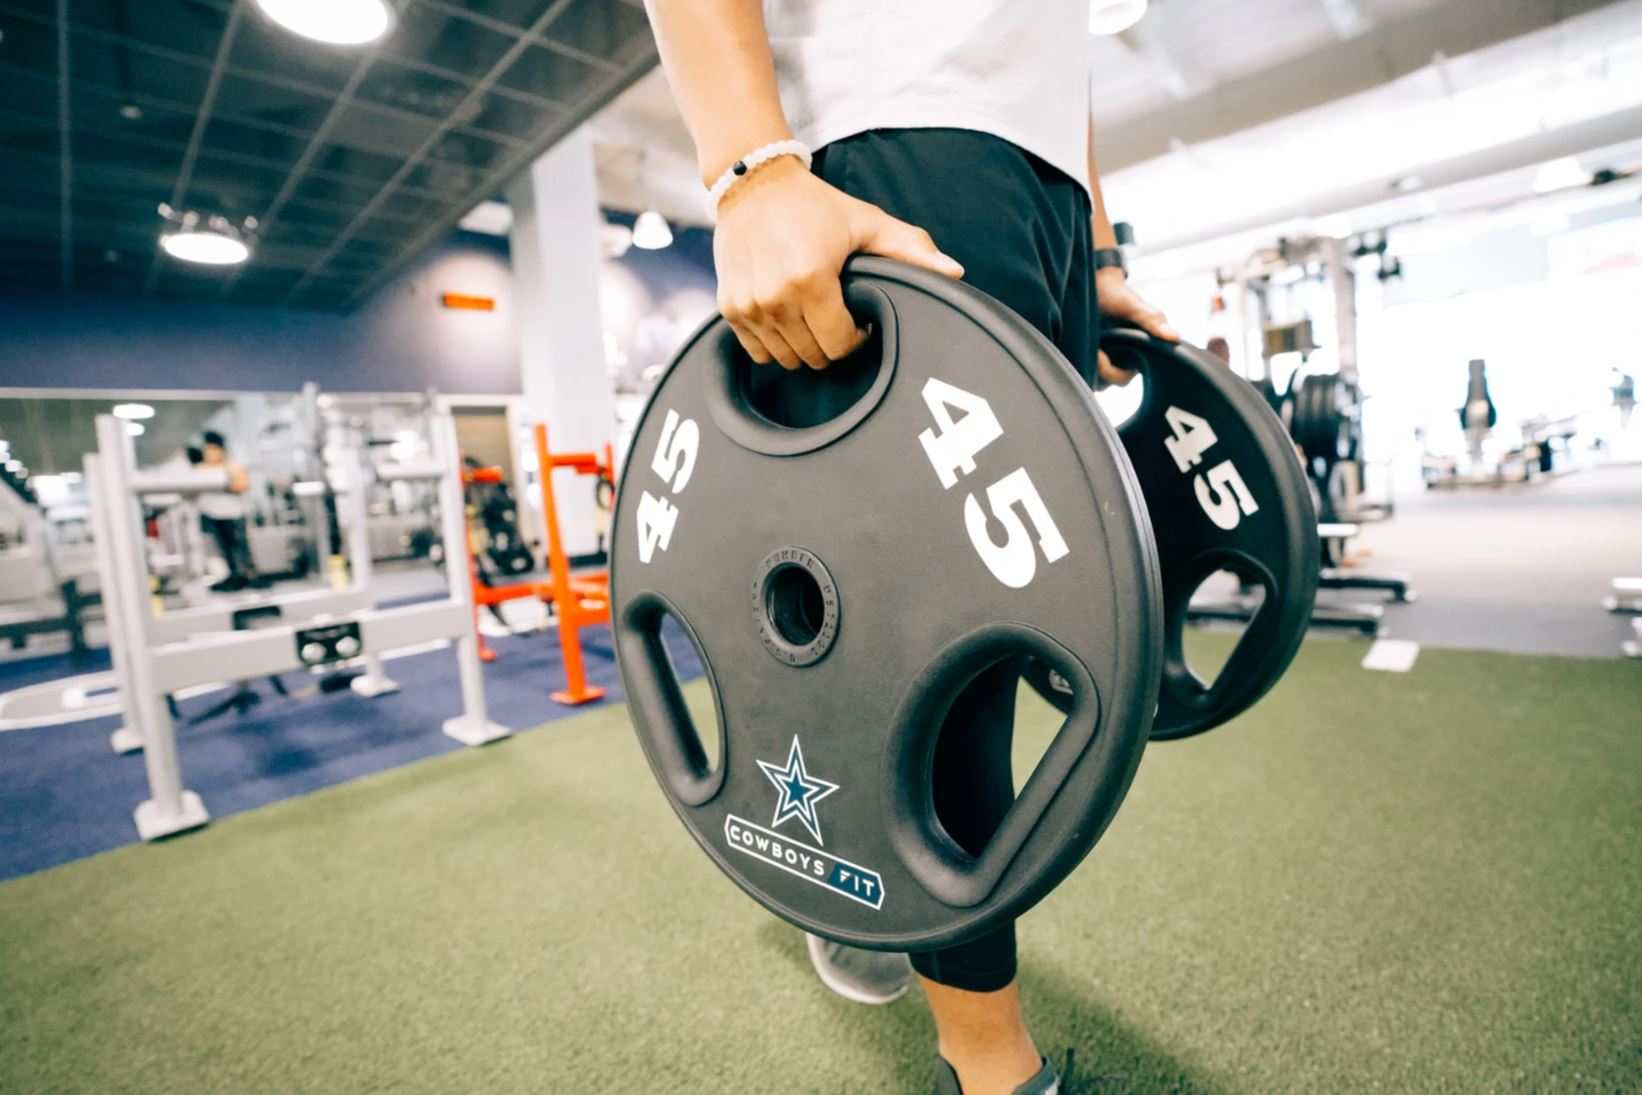 3bd7c187e7319 Cowboys Fit combines the legacy of the Dallas Cowboys, with advanced  technology to track and obtain fitness goals, and a competitive environment  to ...